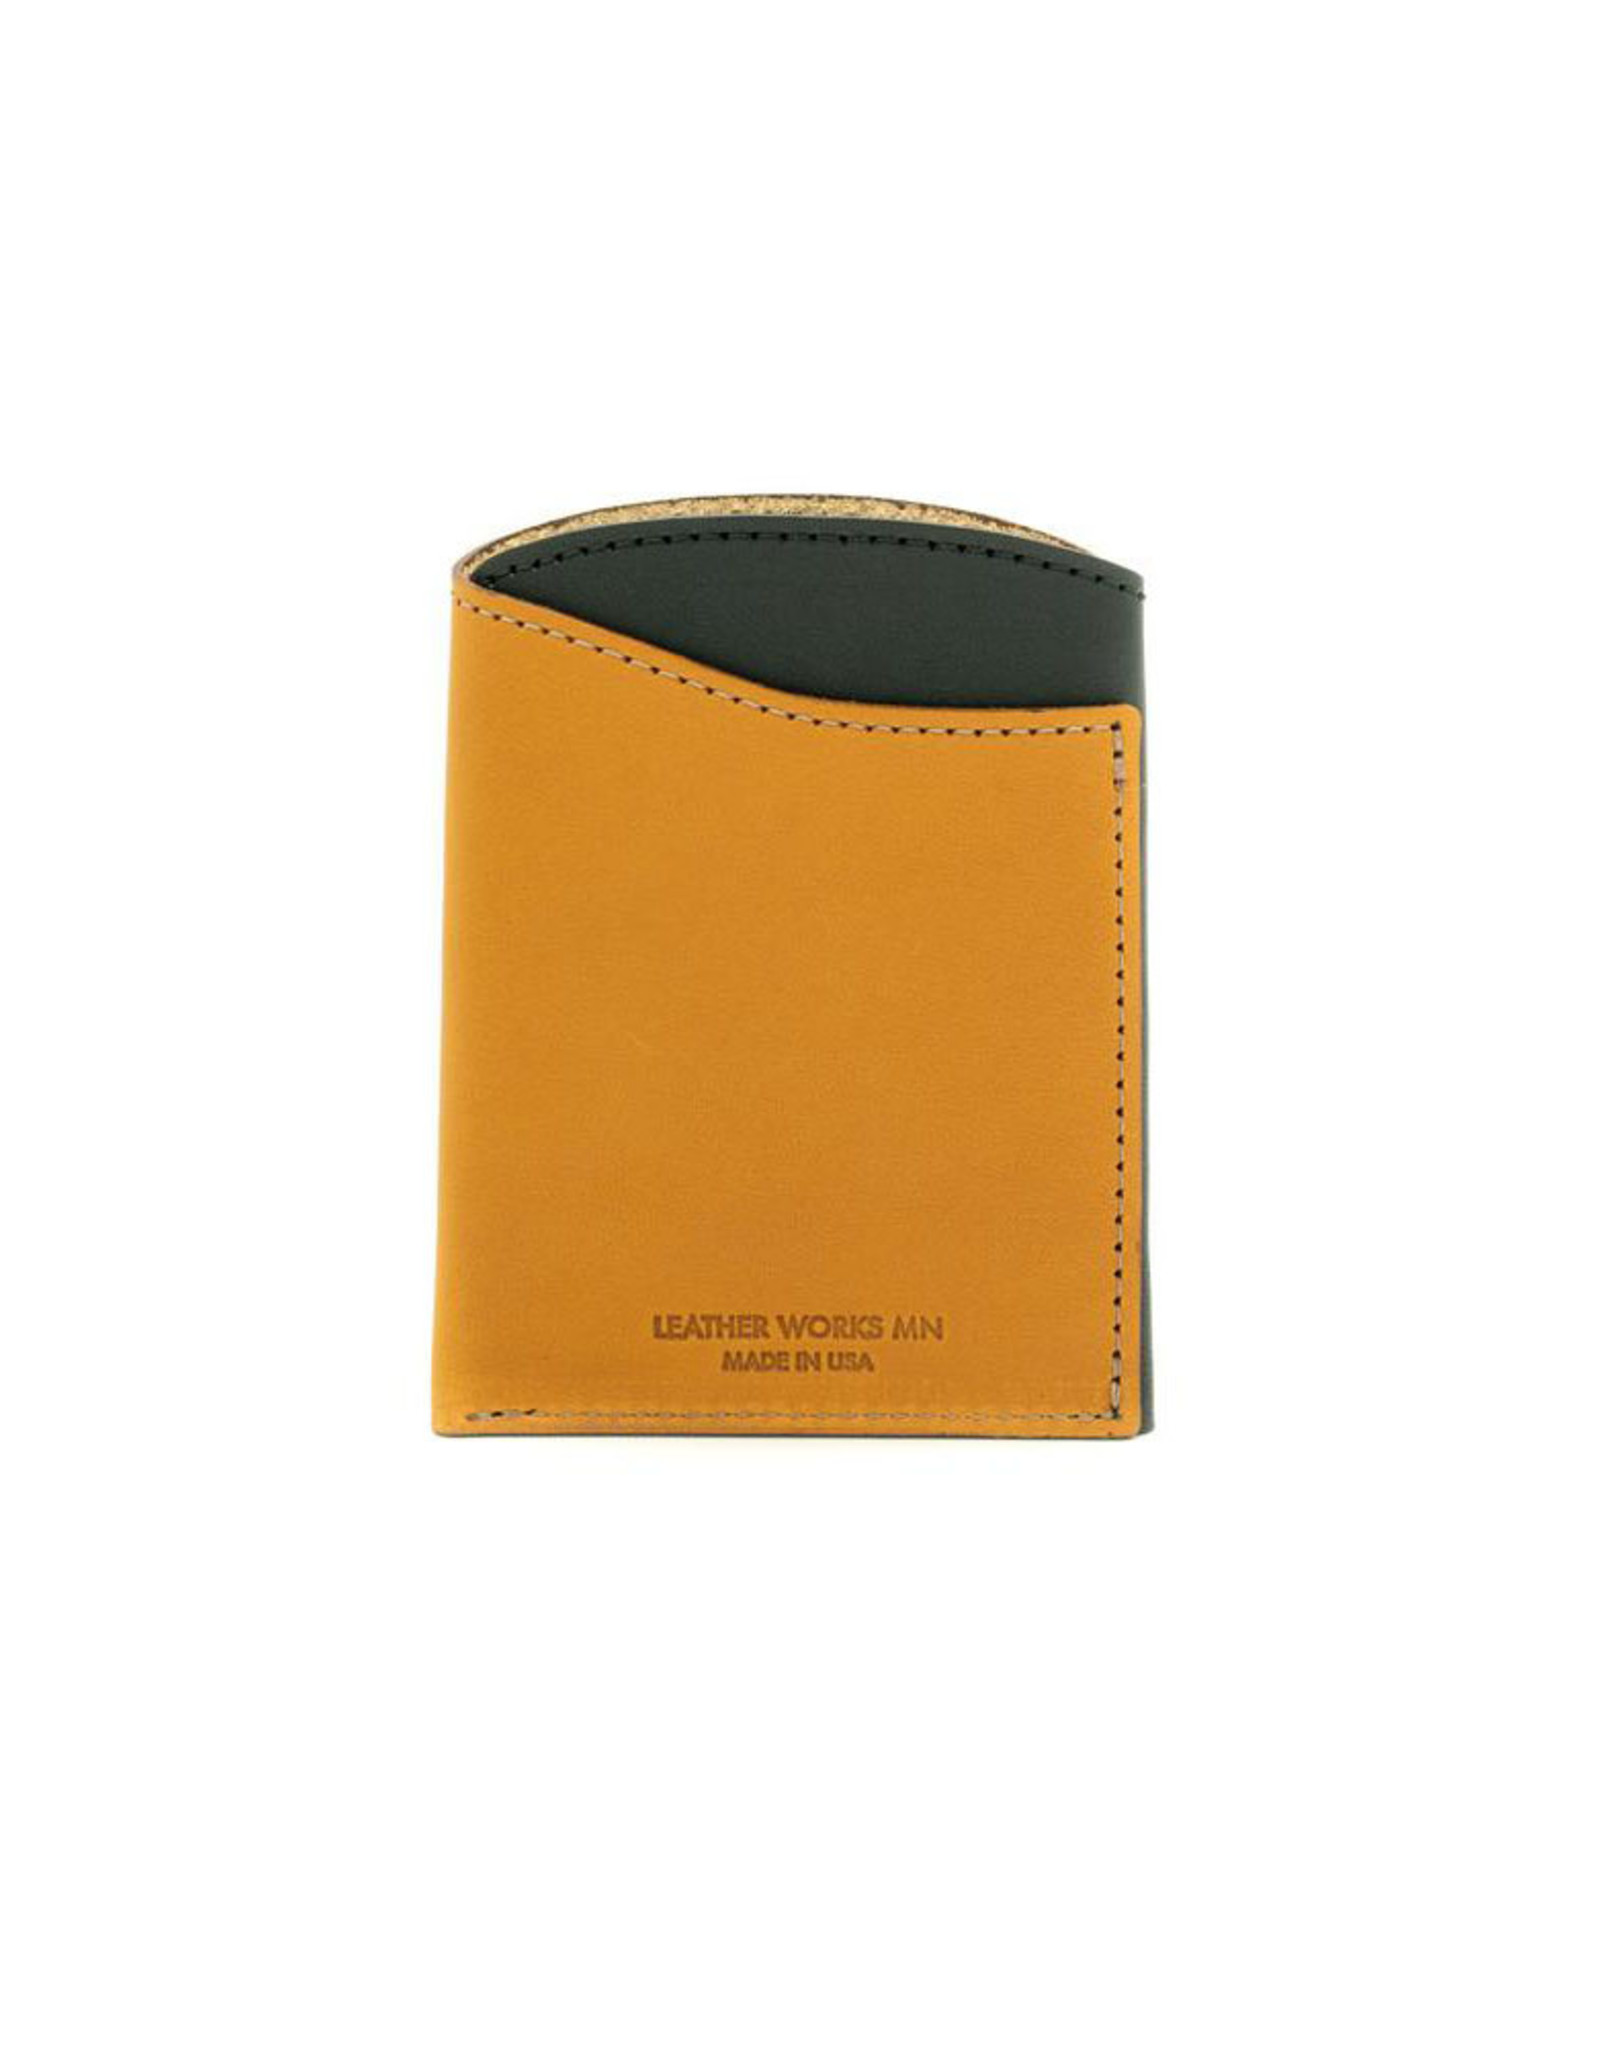 Leather Works Minnesota Font Pocket Flap Wallet Black & Tan